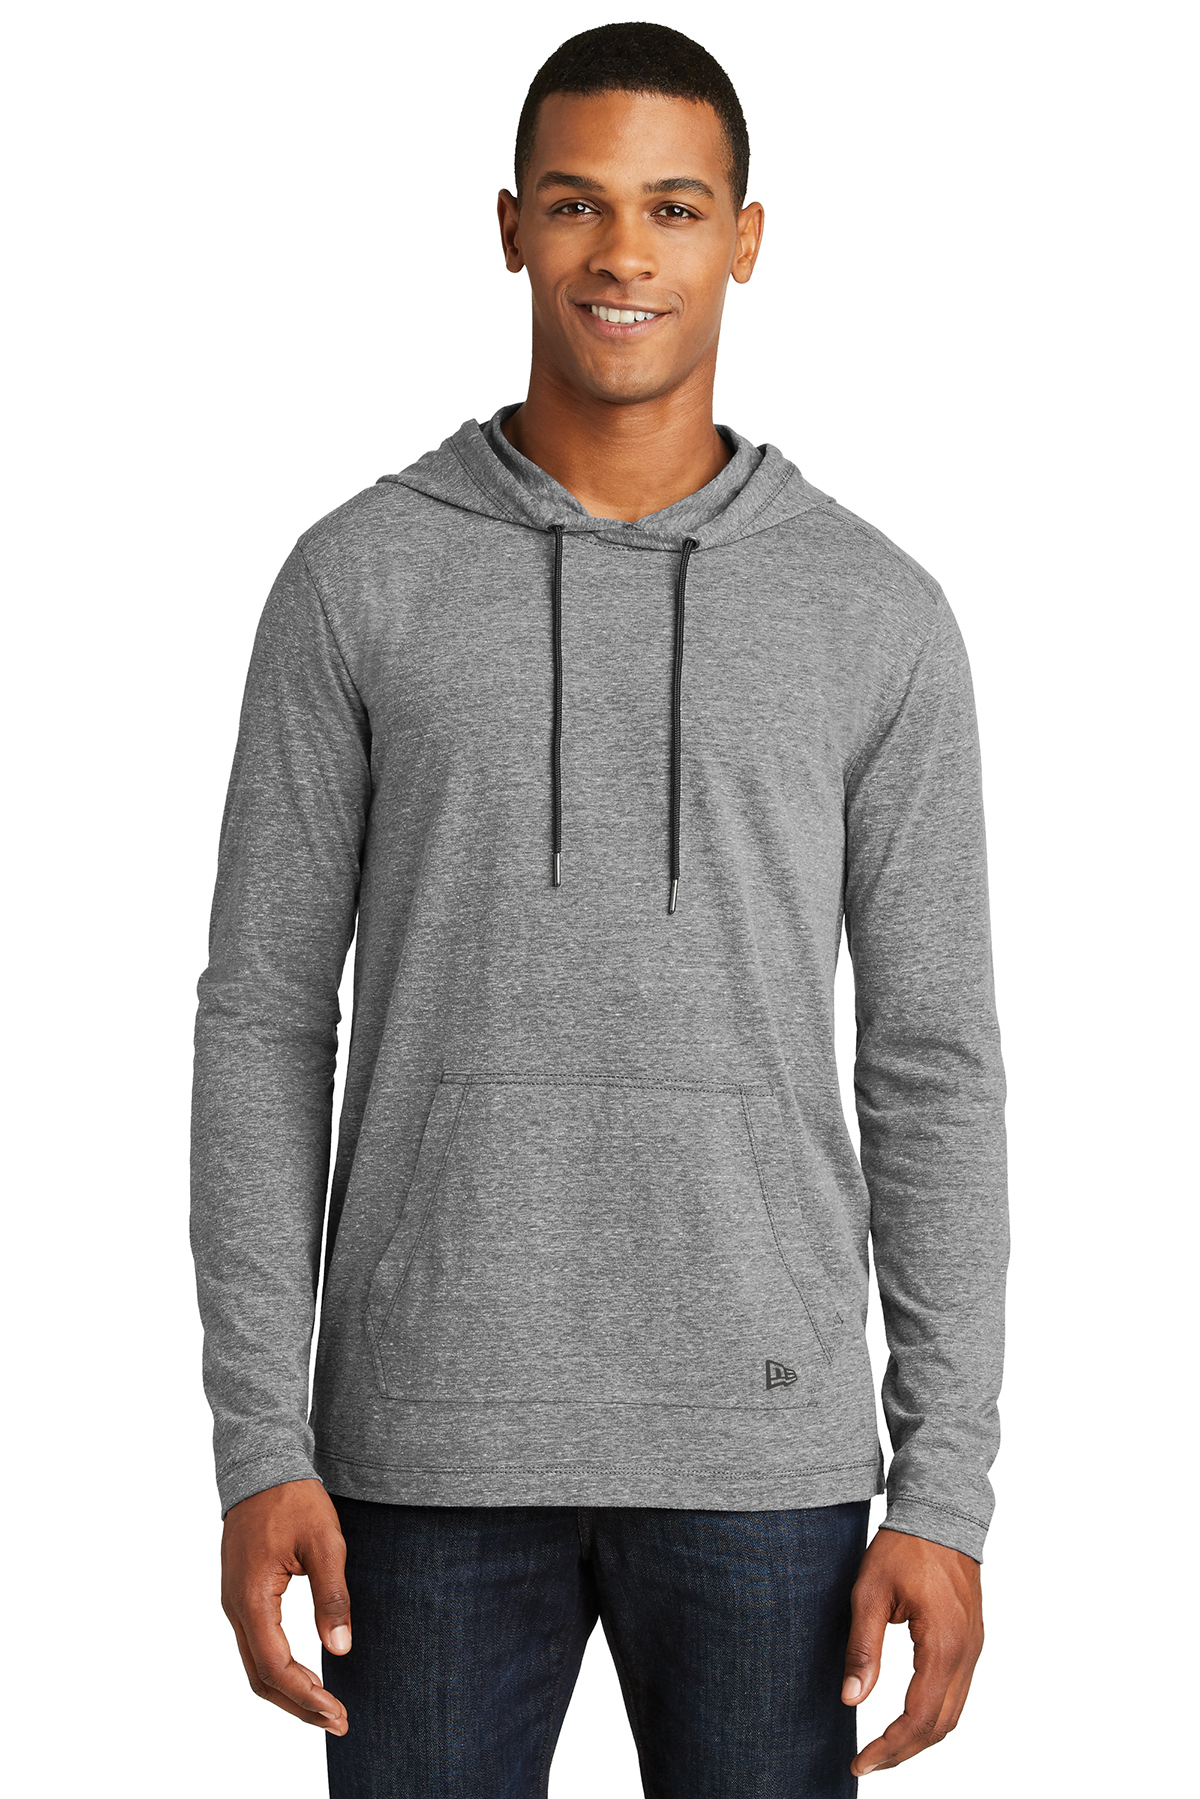 New Era NEA131 - Men's Tri-Blend Performance Pullover ...